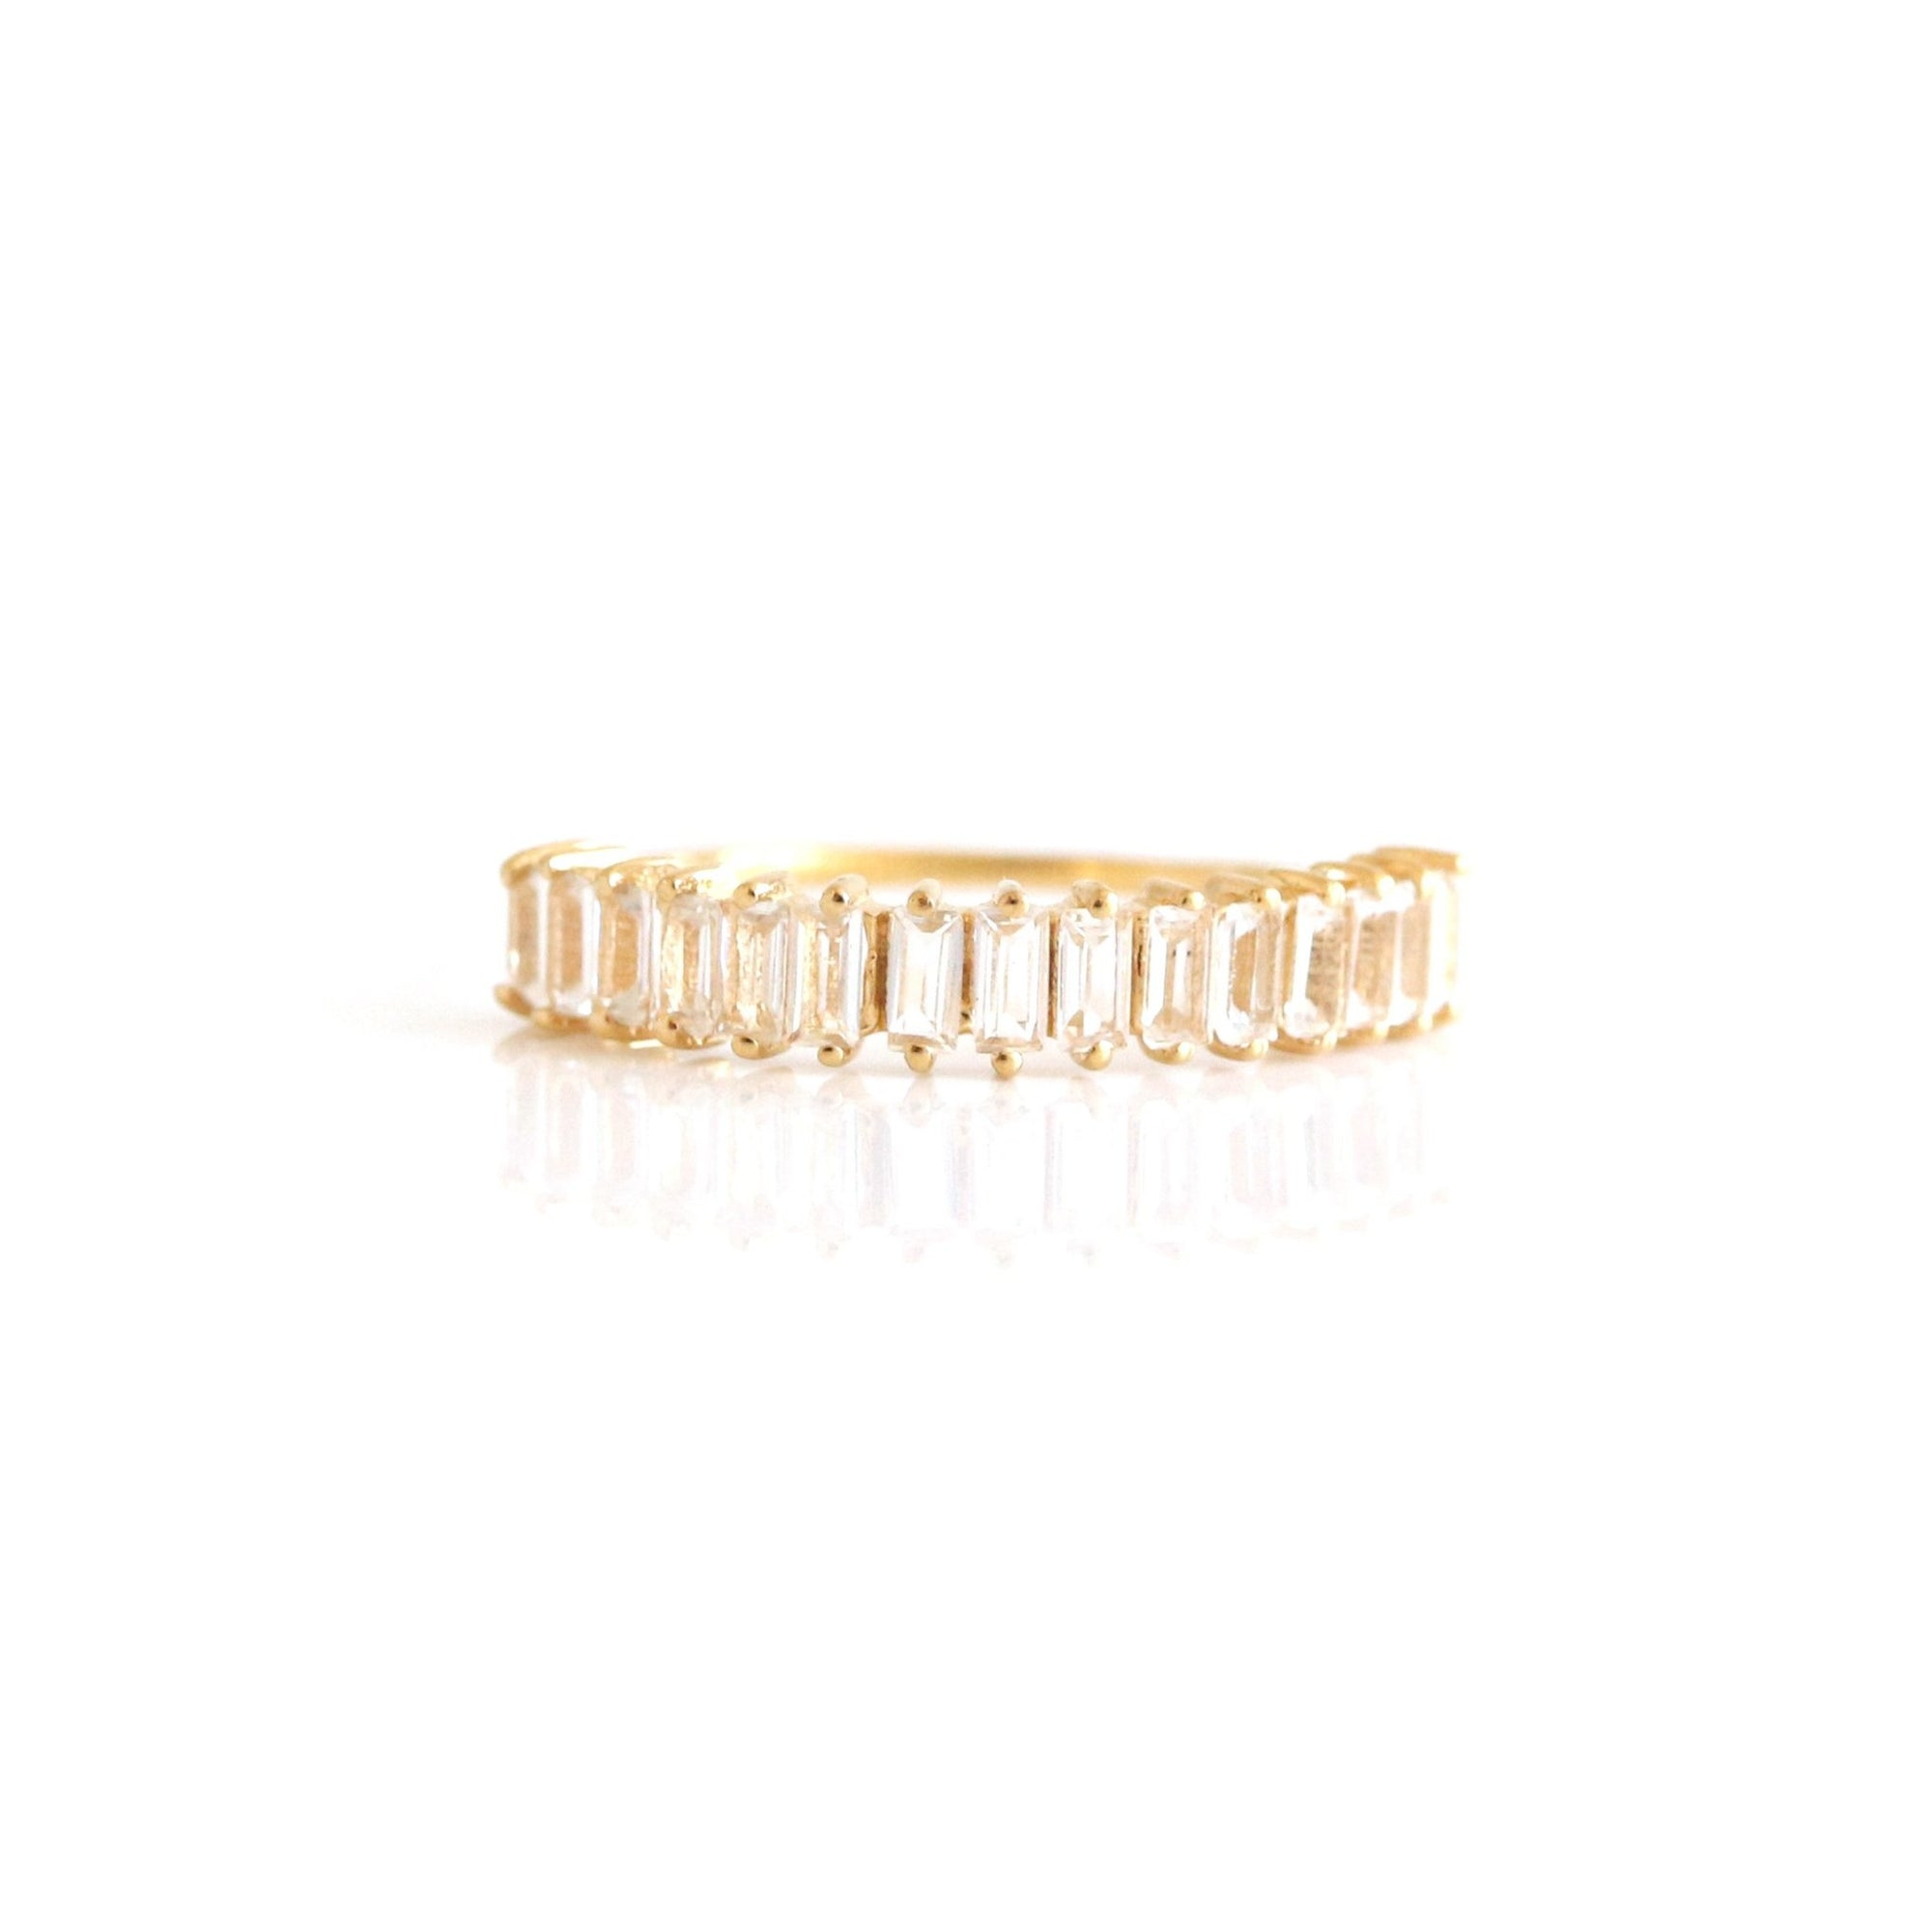 Loyal Stacked Baguette Ring - White Topaz & Gold - SO PRETTY CARA COTTER